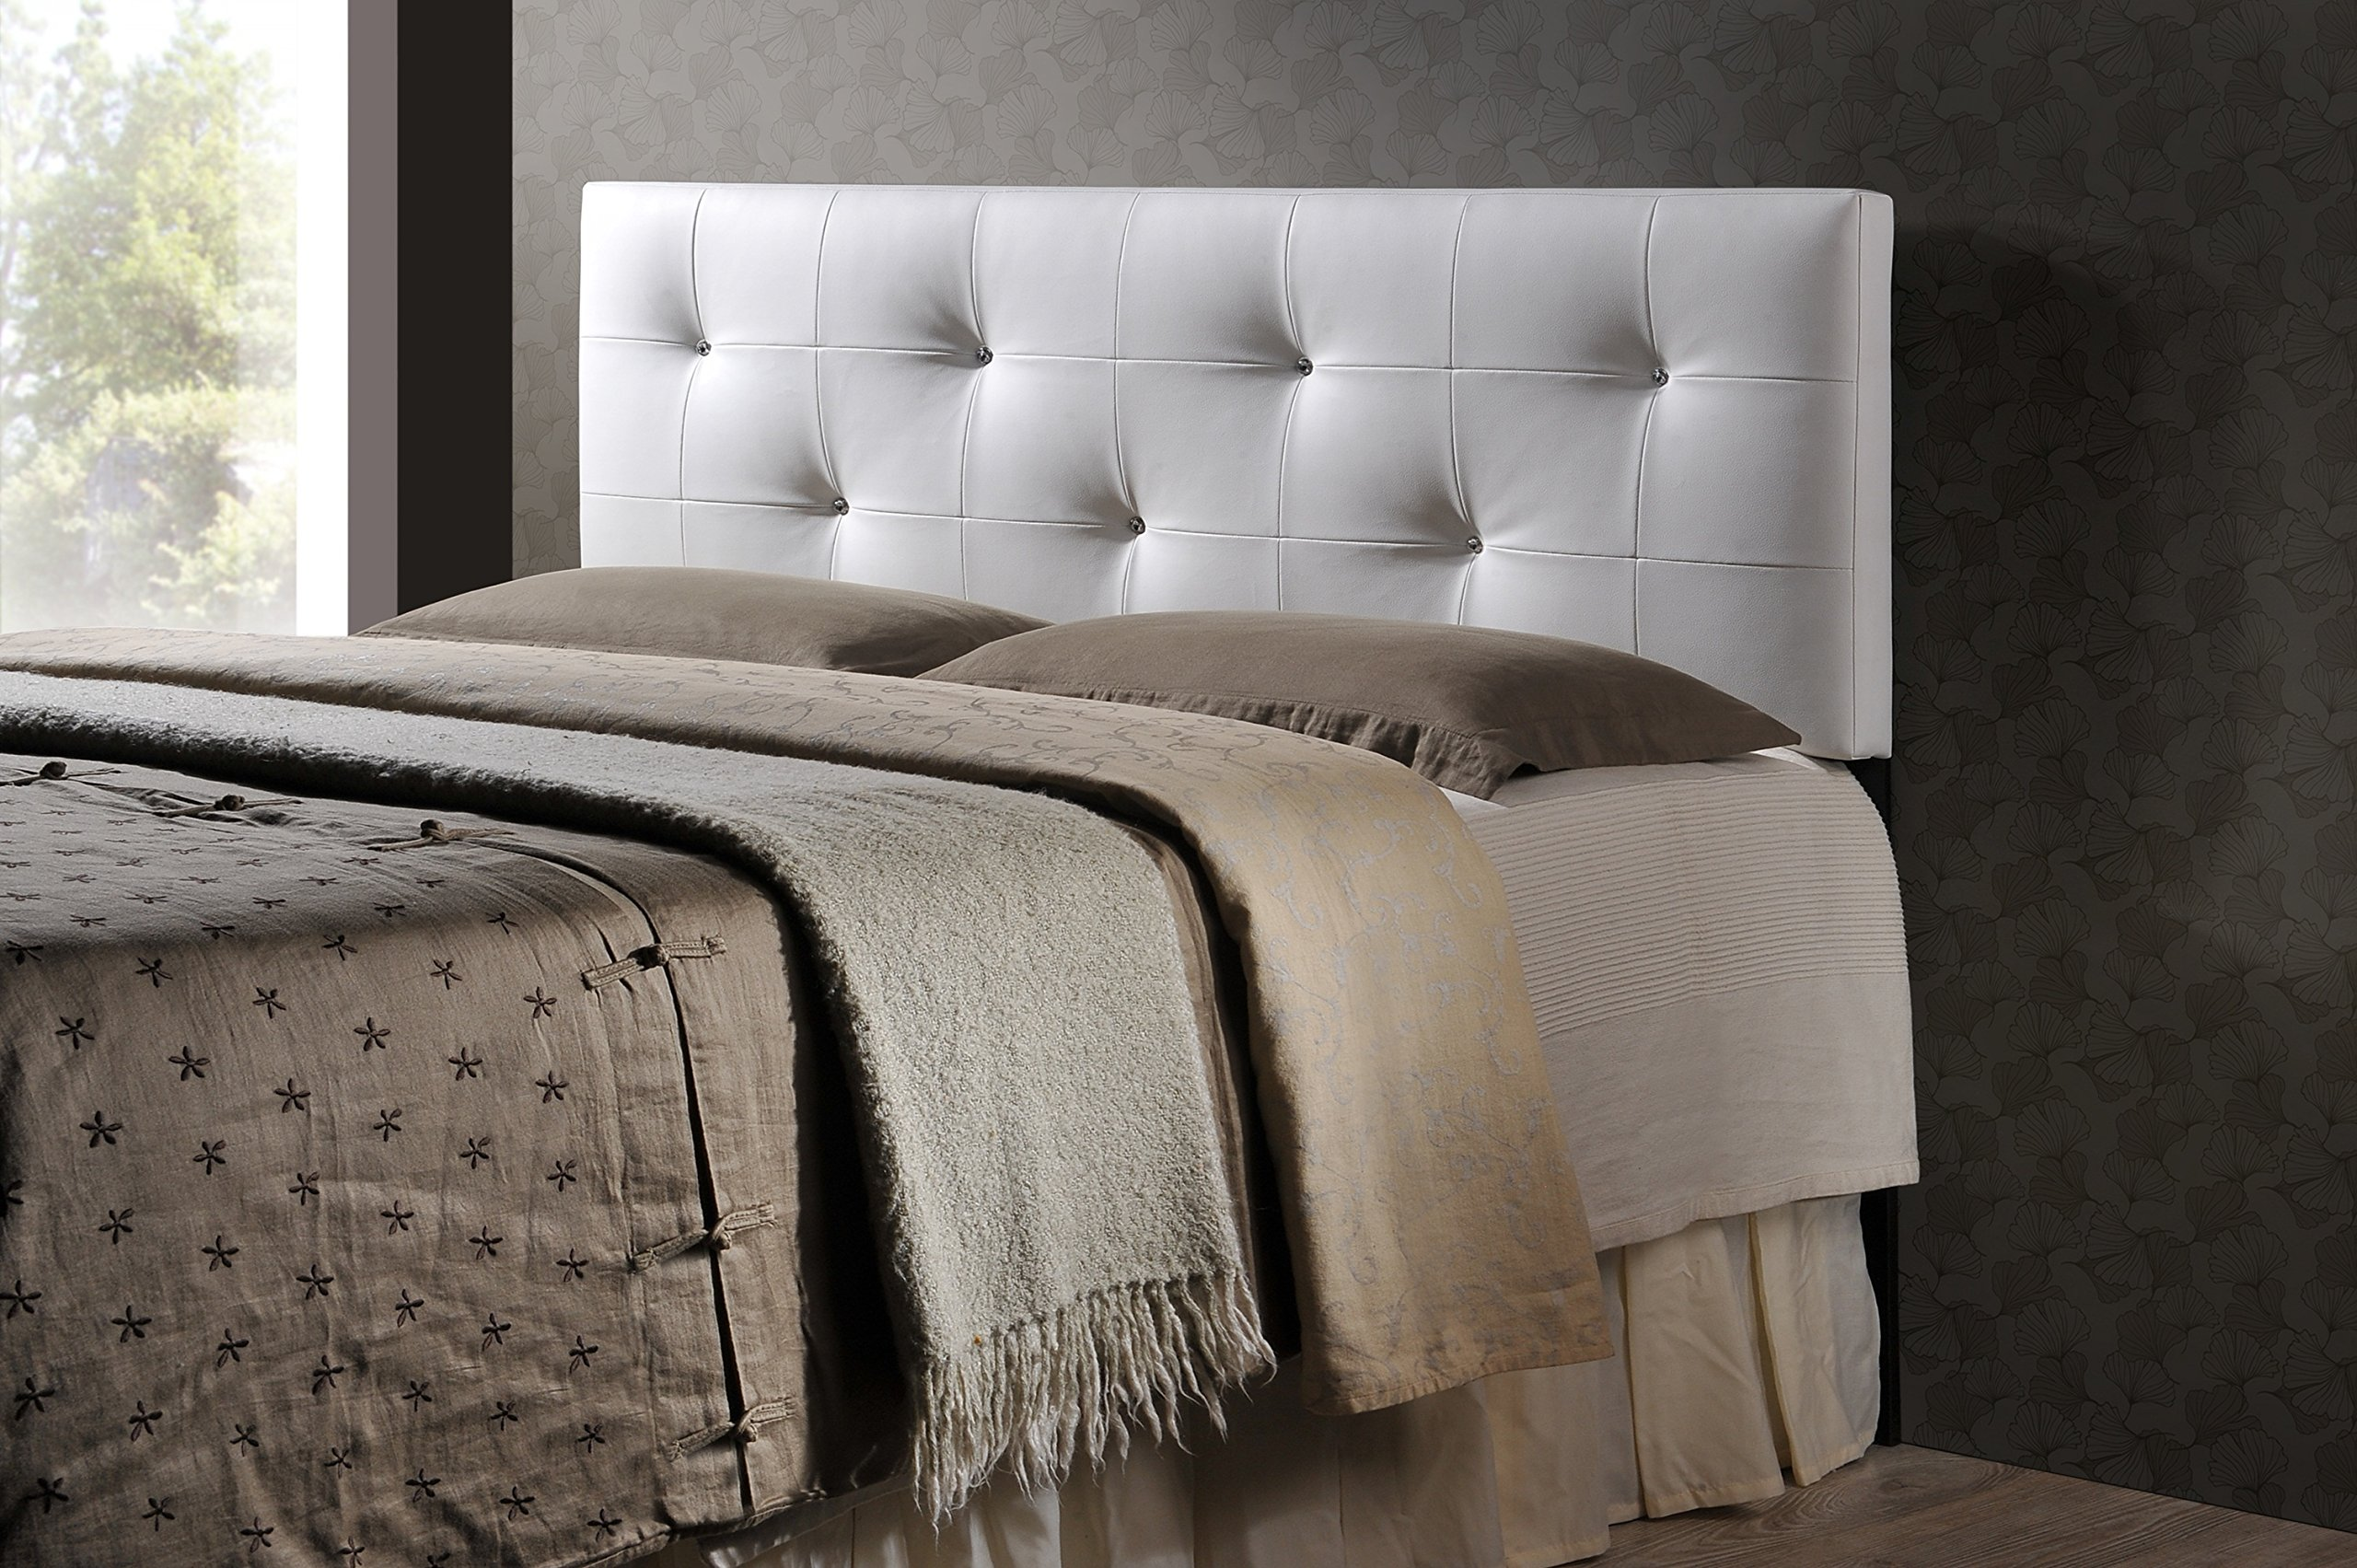 Baxton Studio Wholesale Interiors Dalini Modern and Contemporary Faux Leather Headboard with Faux Crystal Buttons, King, White